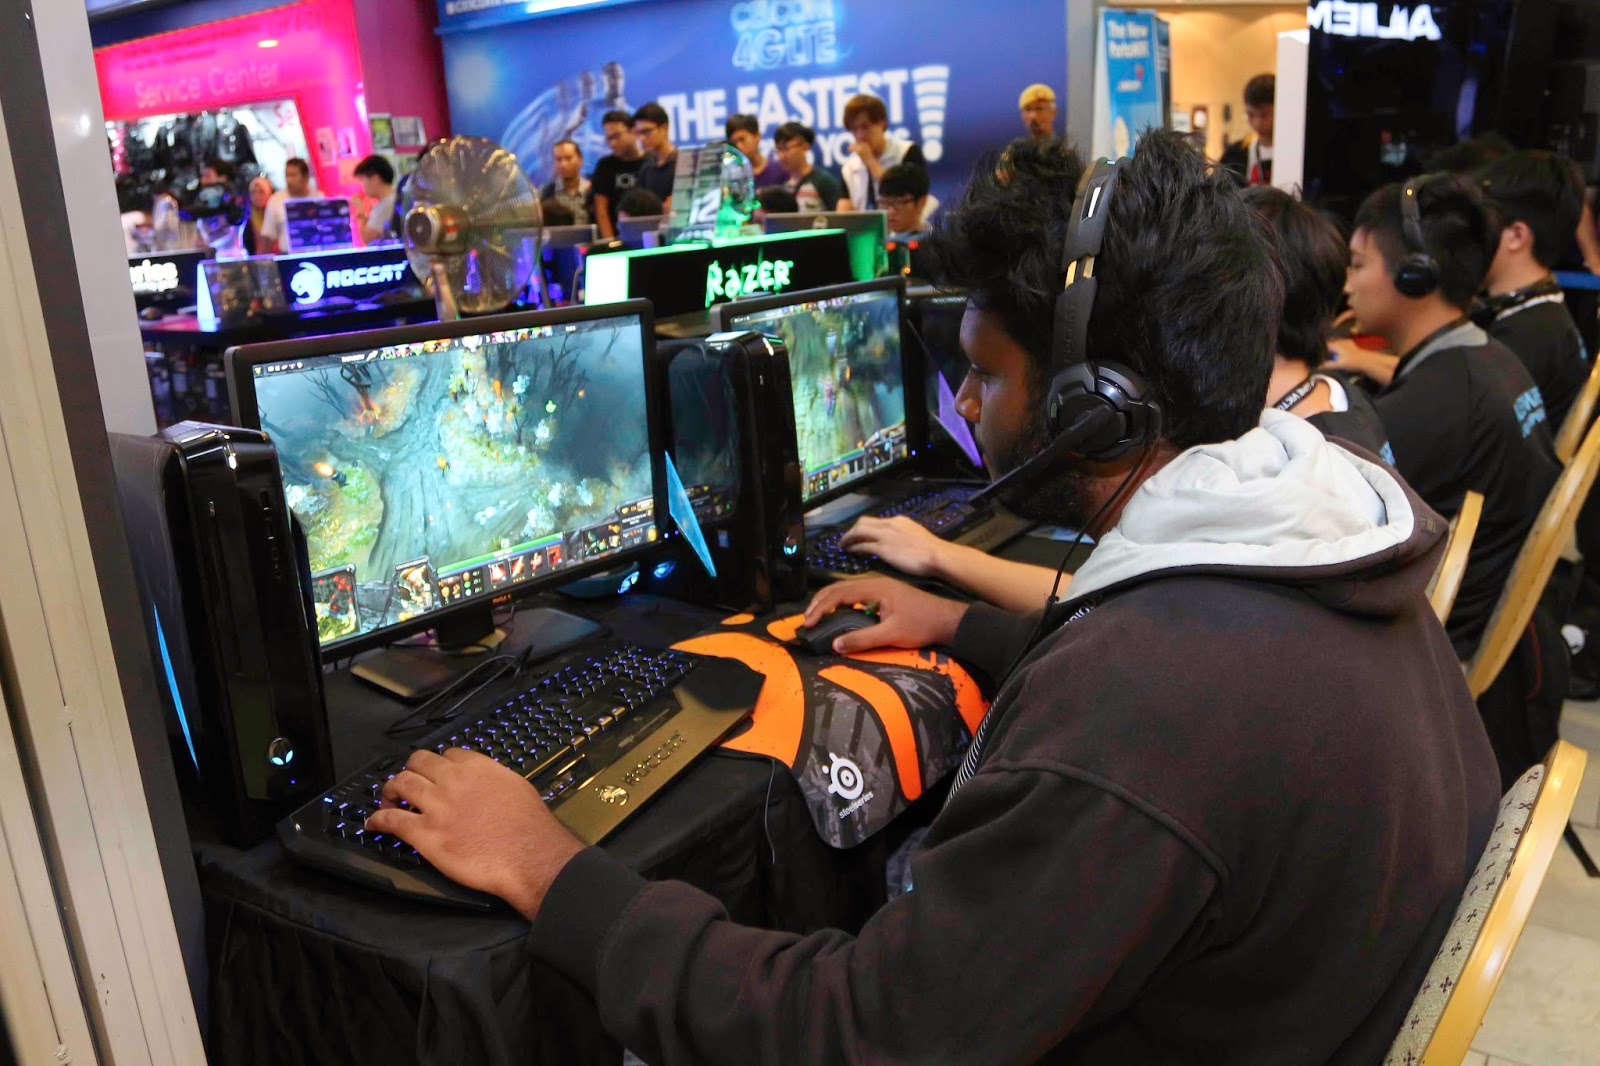 Malaysia's Leading Gamers Battle It Out at Alienware Tournament Alienware and Genysis Cyber E-sport Joined Forces for Alienware LAN Championship 13